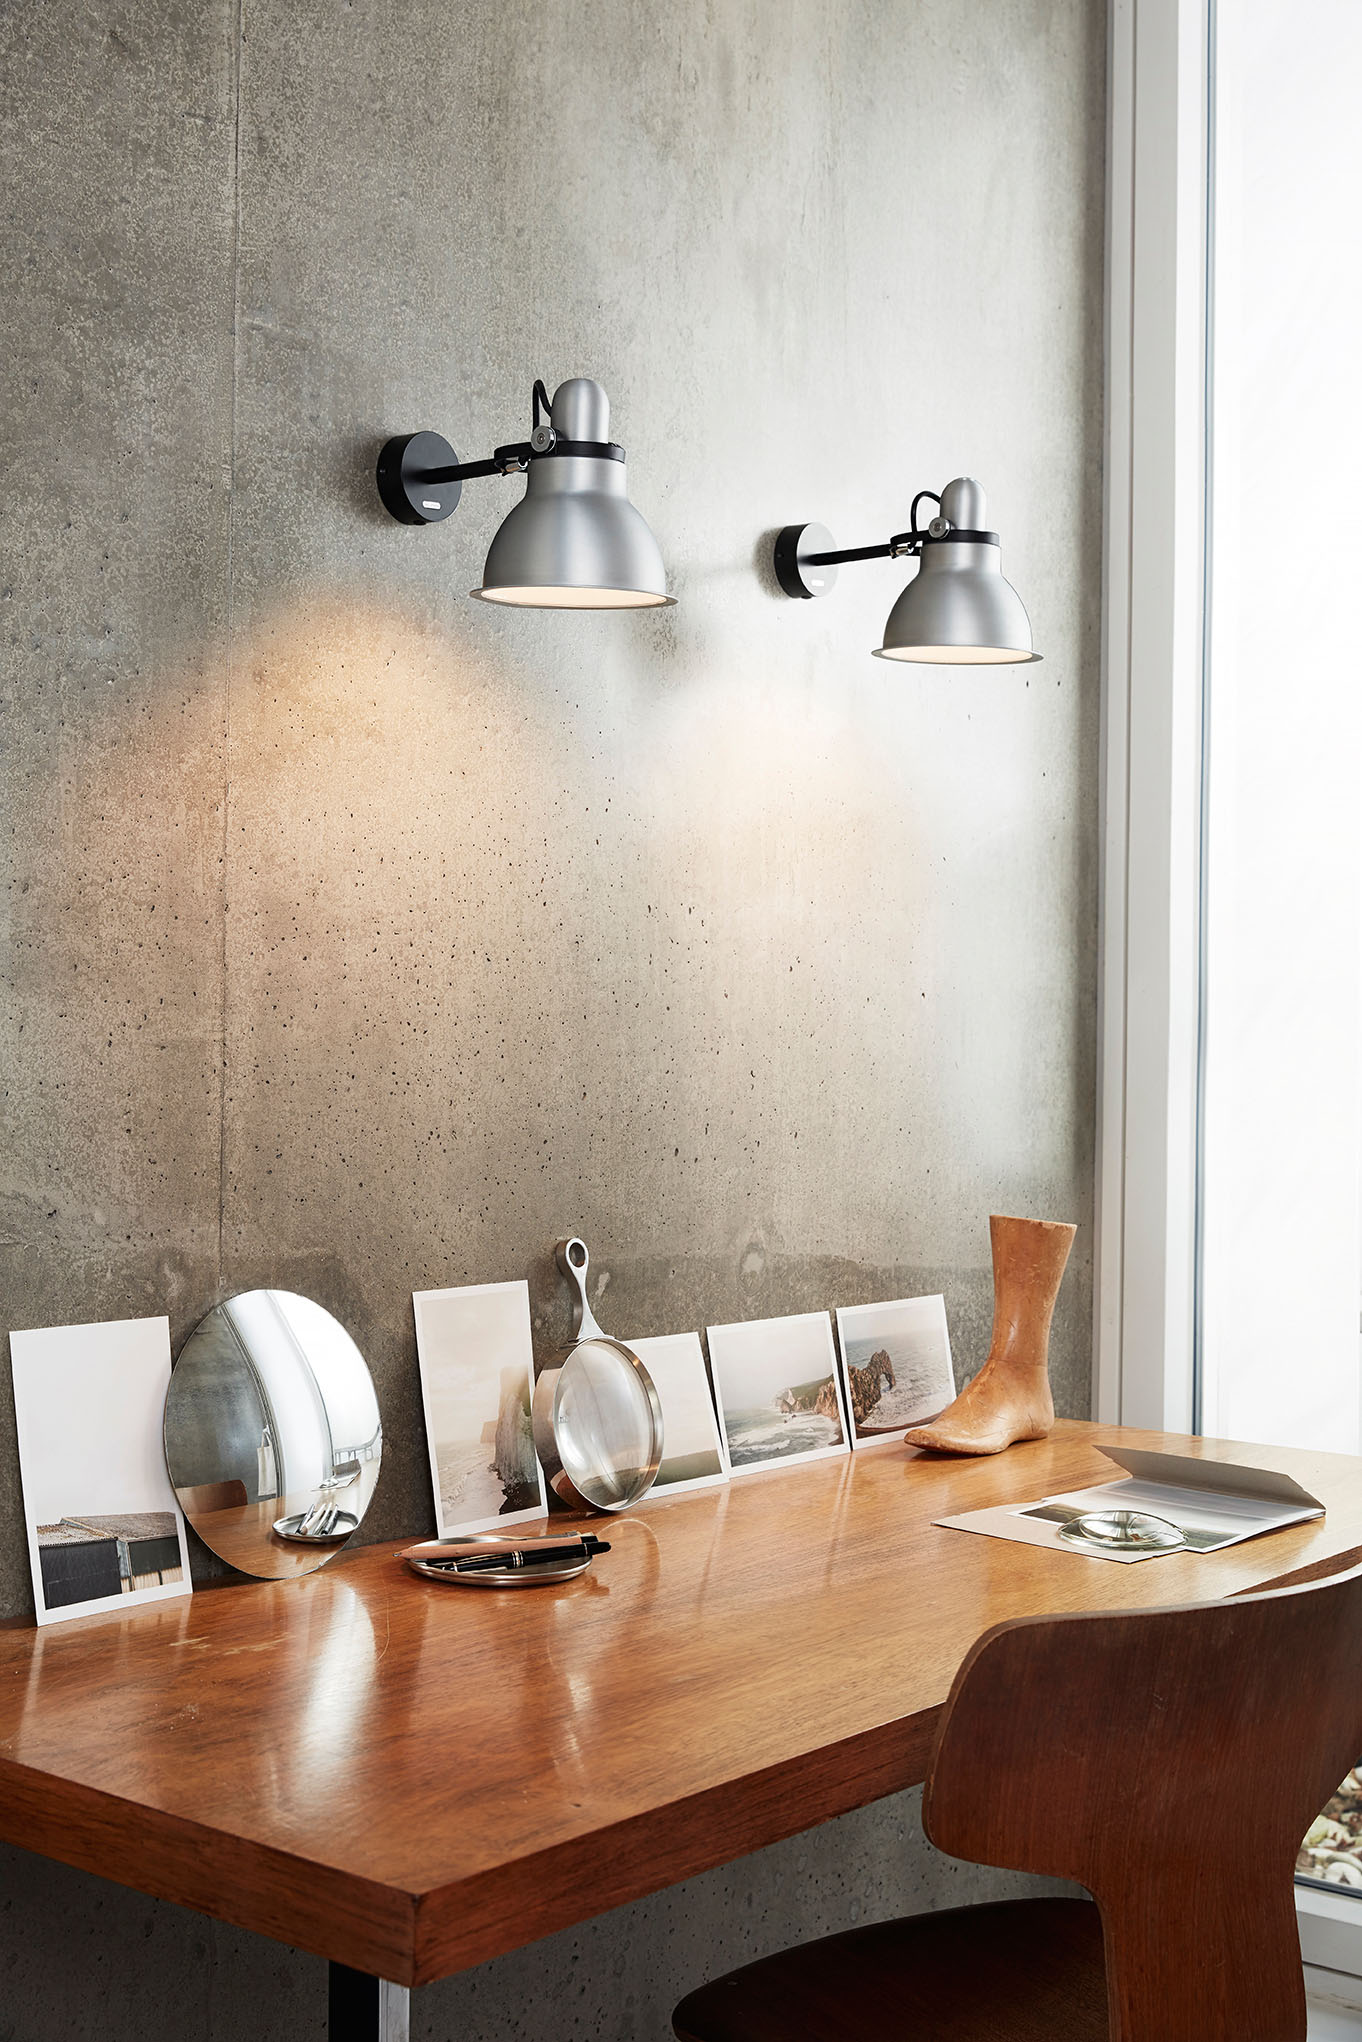 Type 1228 Metallic Wall Light SIlver Lustre.jpg